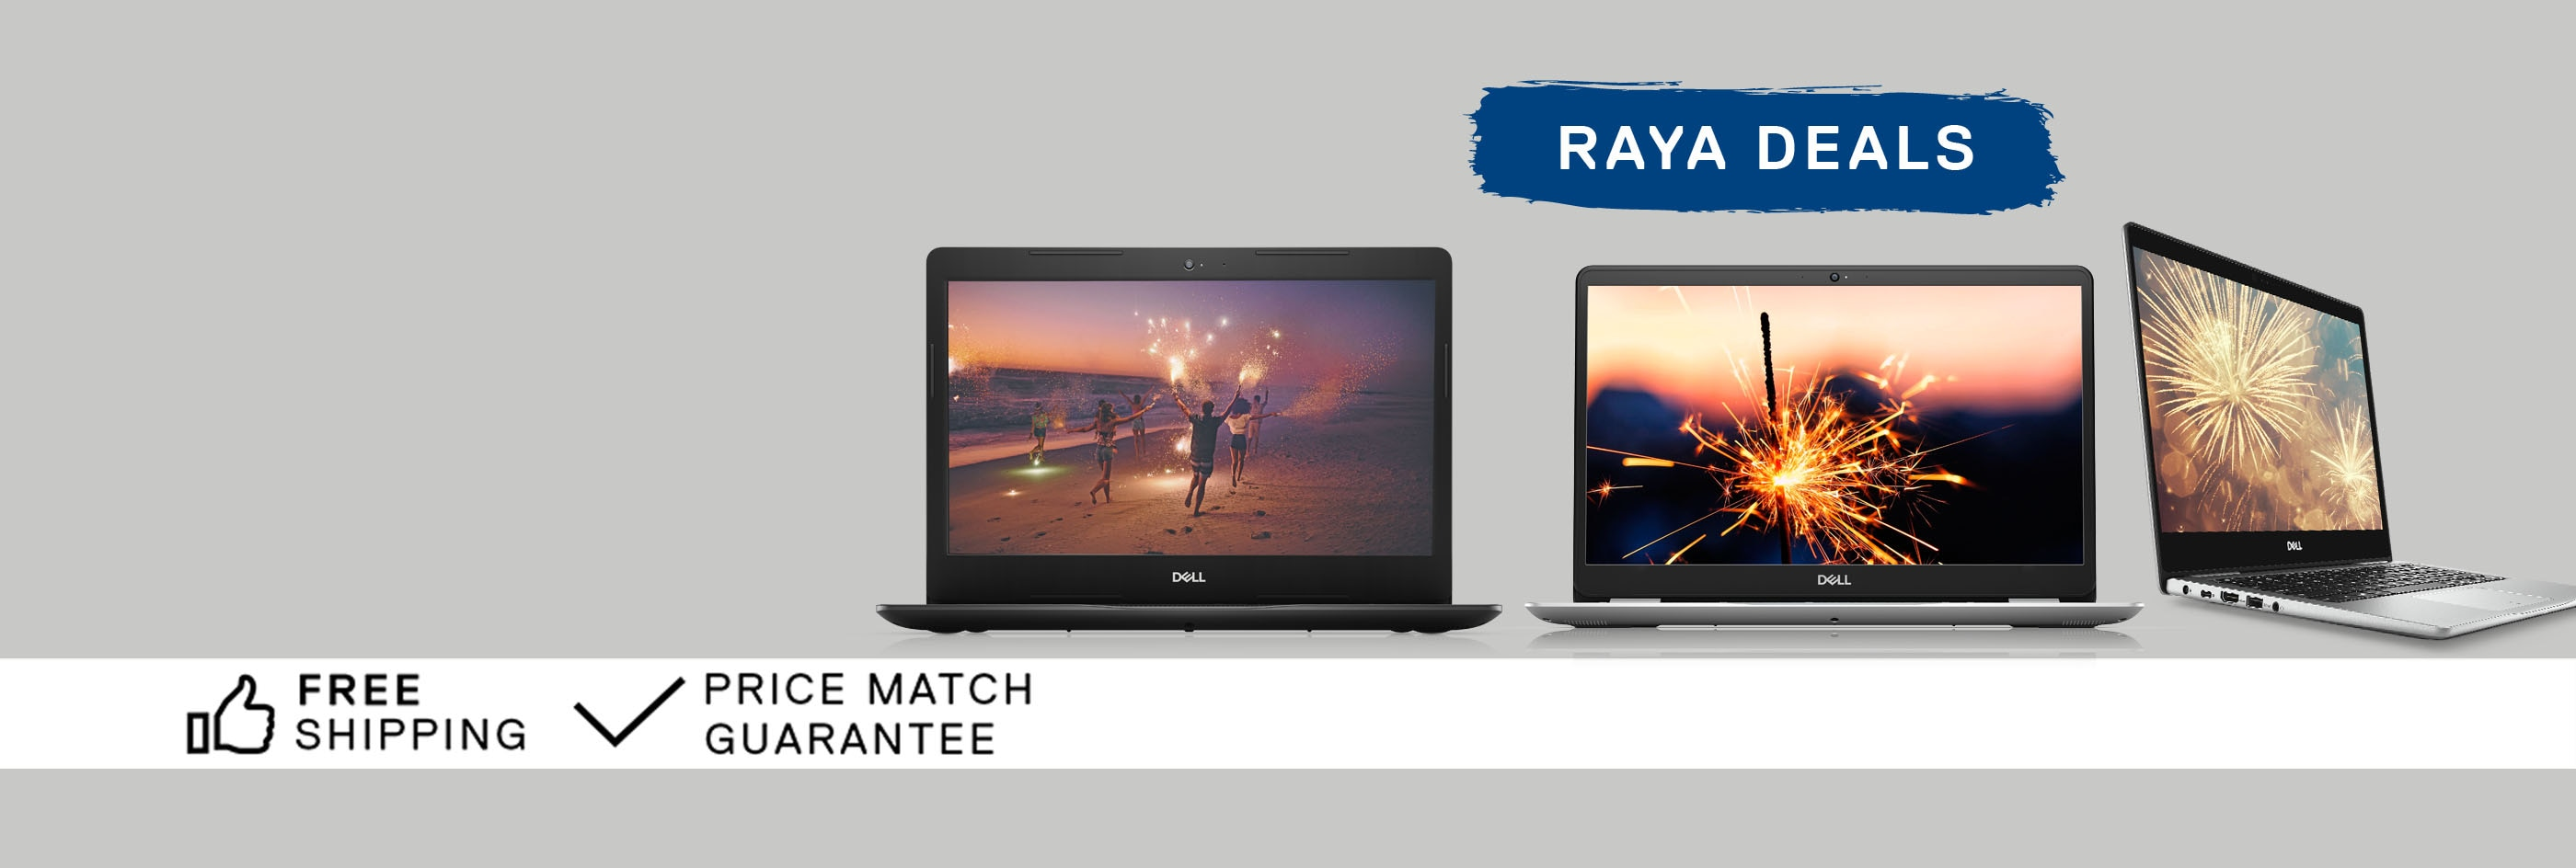 Raya Deals: Up to RM600 Off Dell laptops!